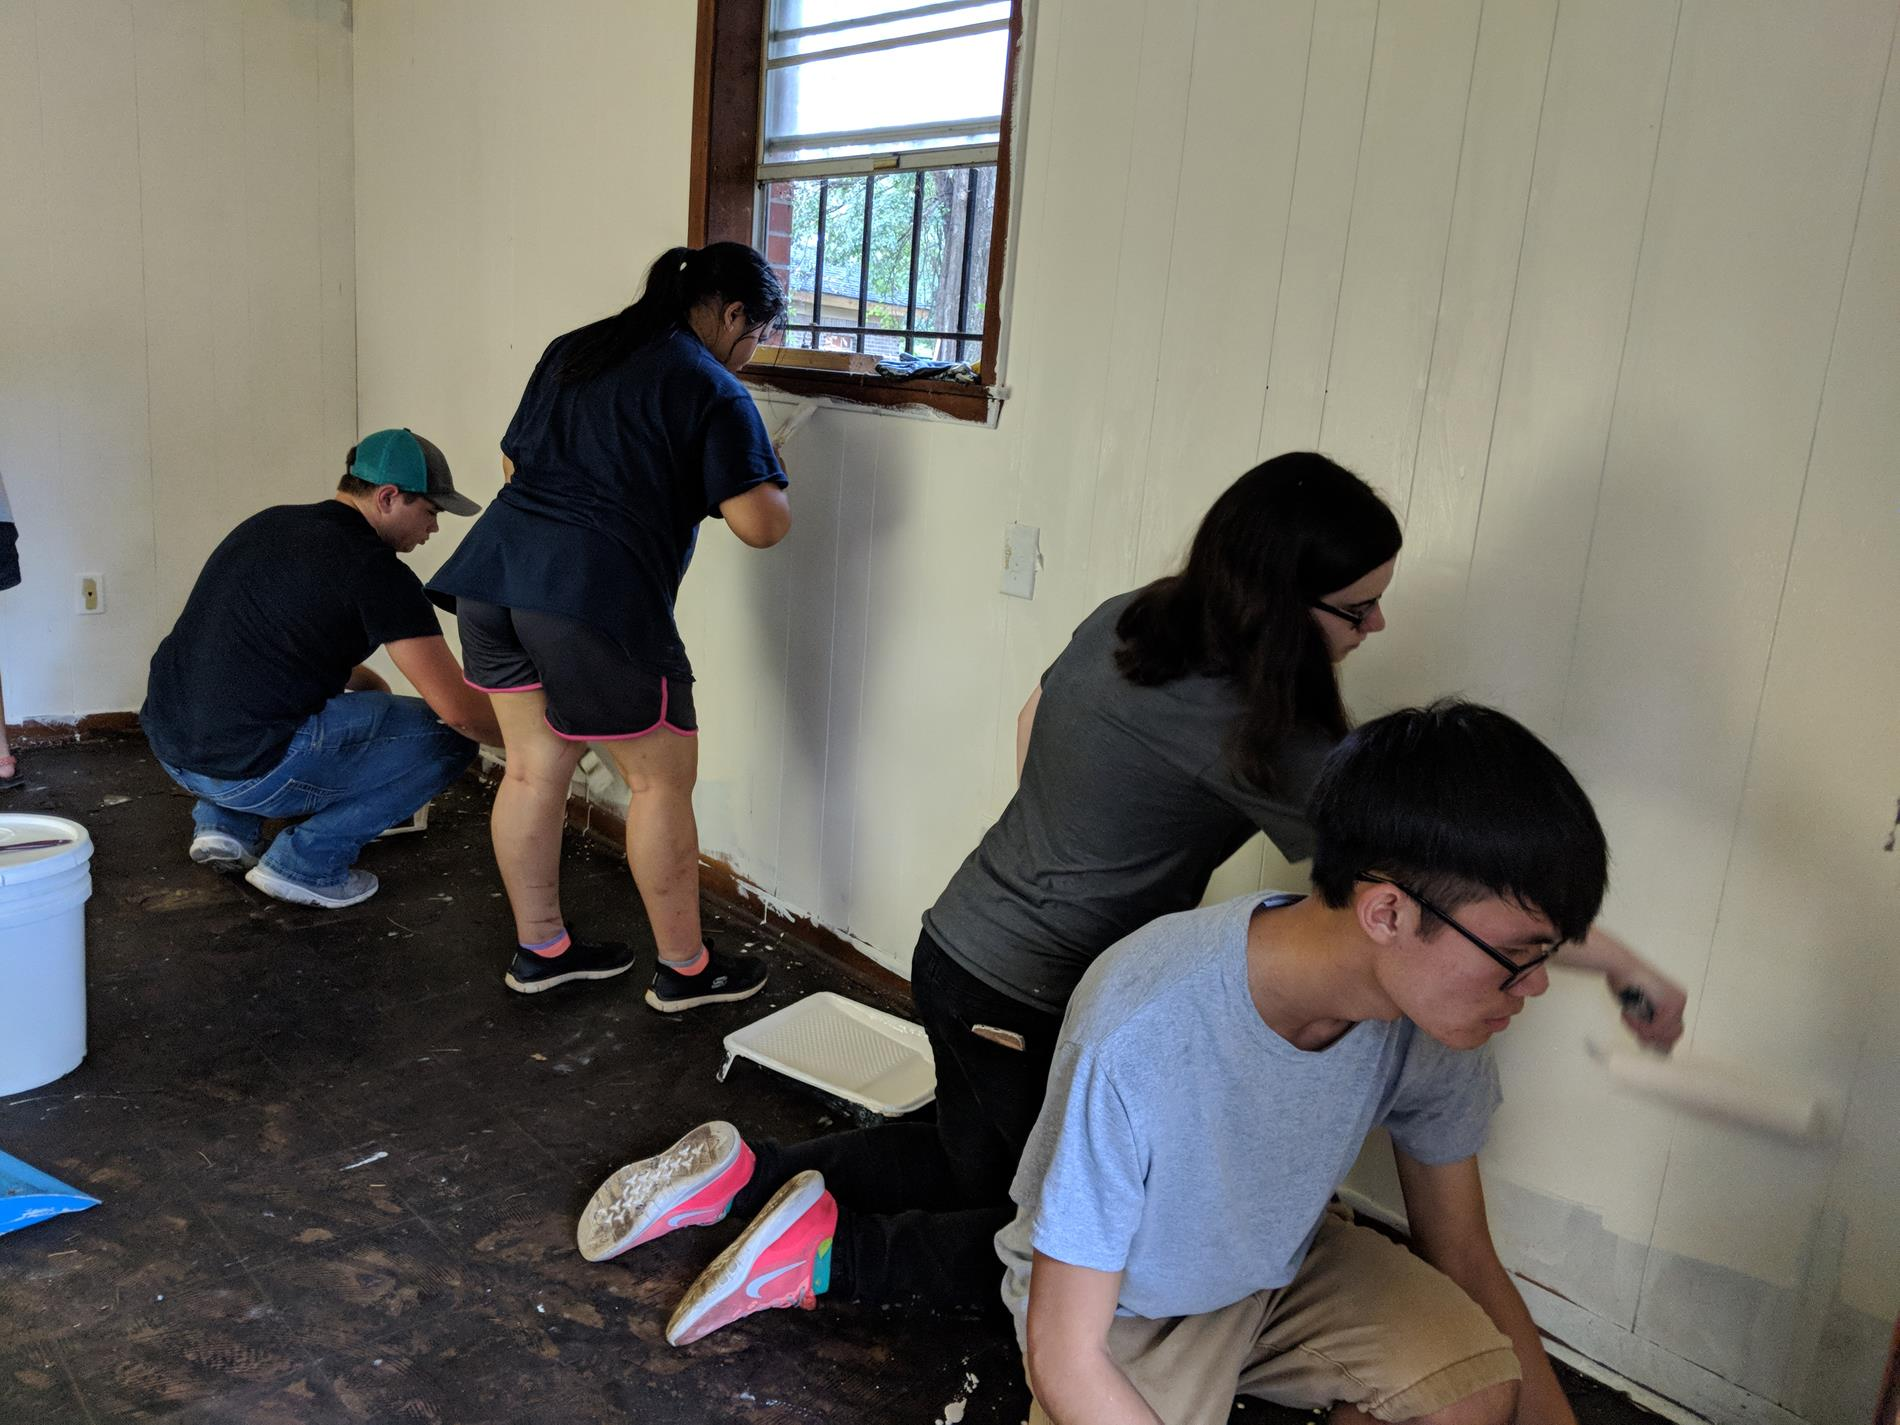 Jason Saucier, Rosemary Meas, Ashleigh Nelson, and Aaron B hard at work painting.